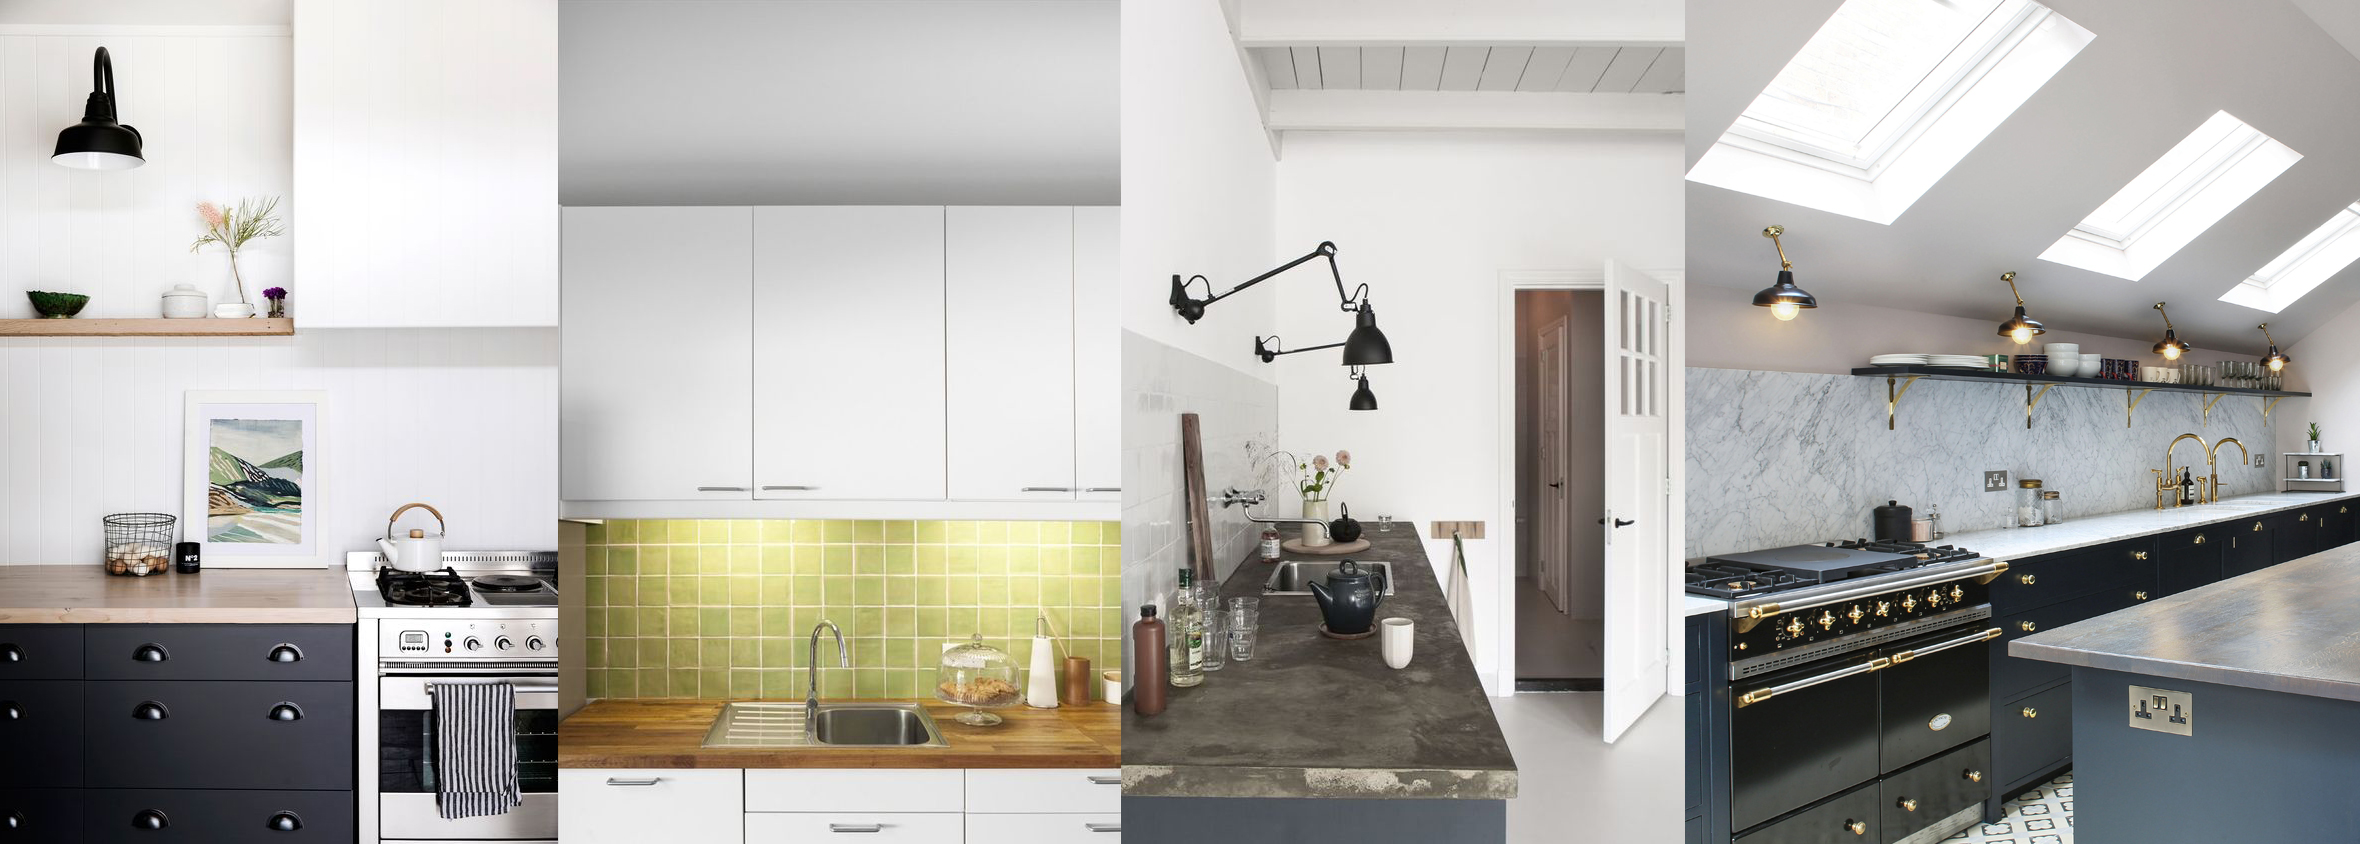 kitchen task lighting country table sets considerations create a well lit masterpiece inspiration